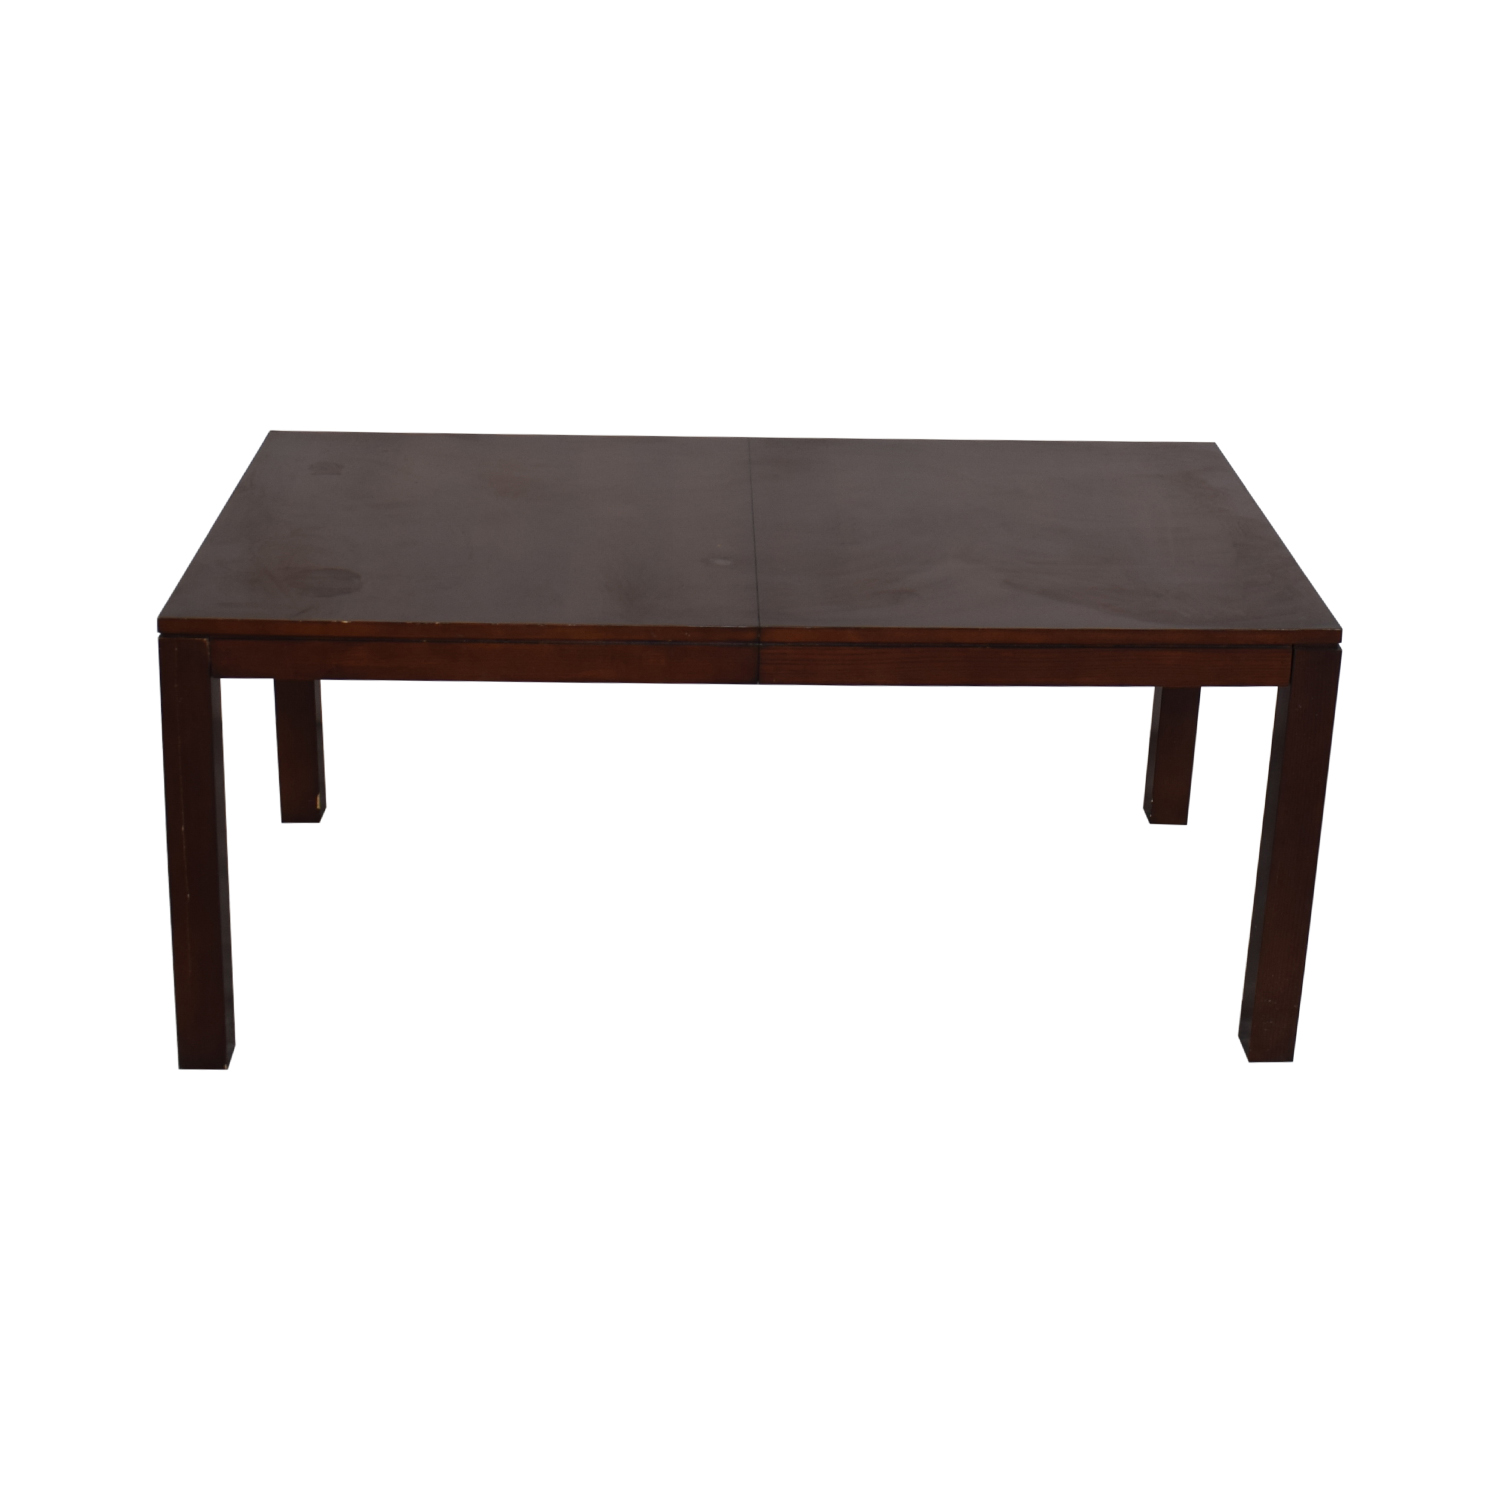 Ethan Allen Ethan Allen Solid Wood Dining Table Tables